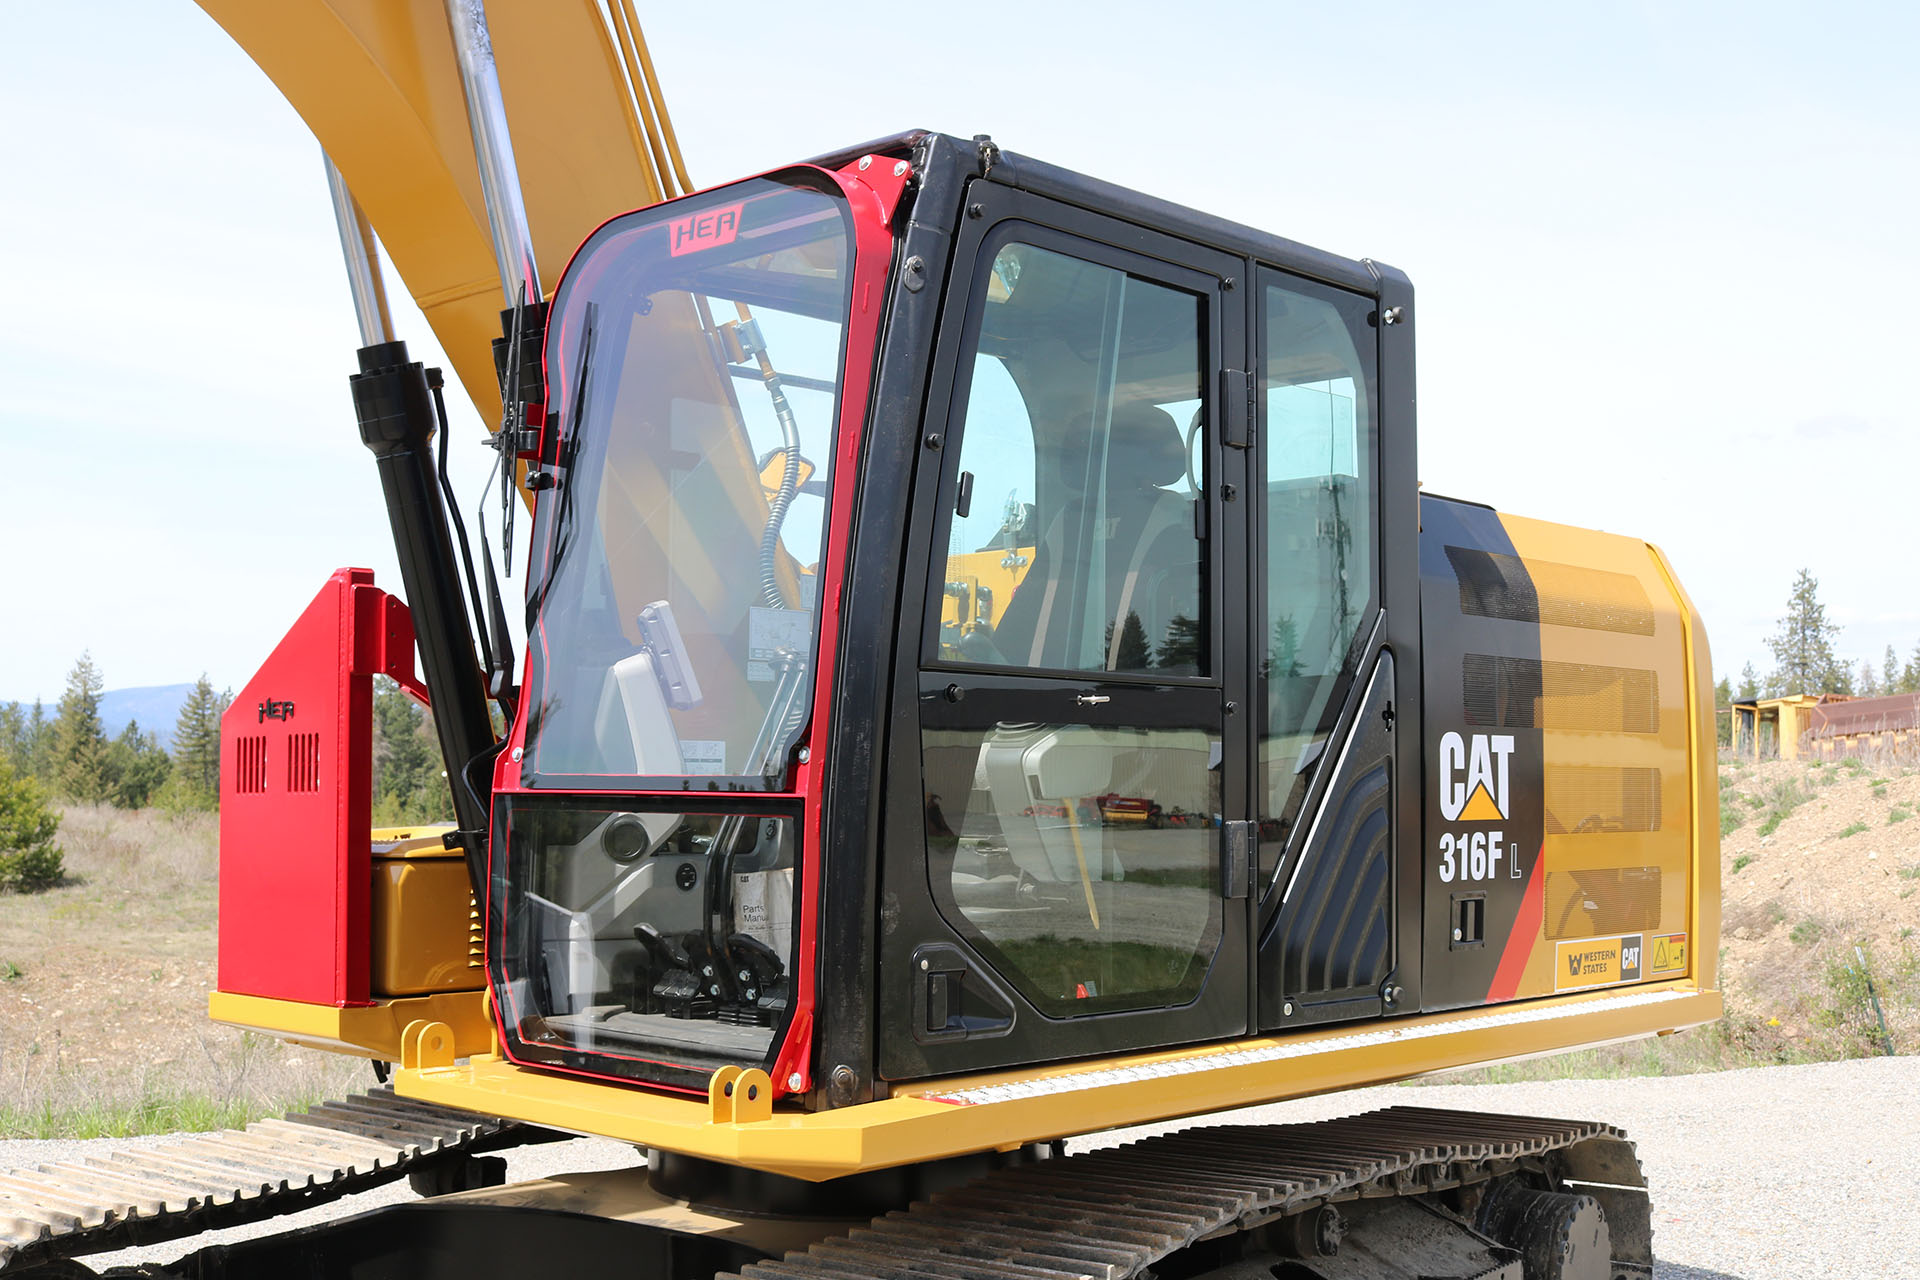 CAT 316F Ballistic Window